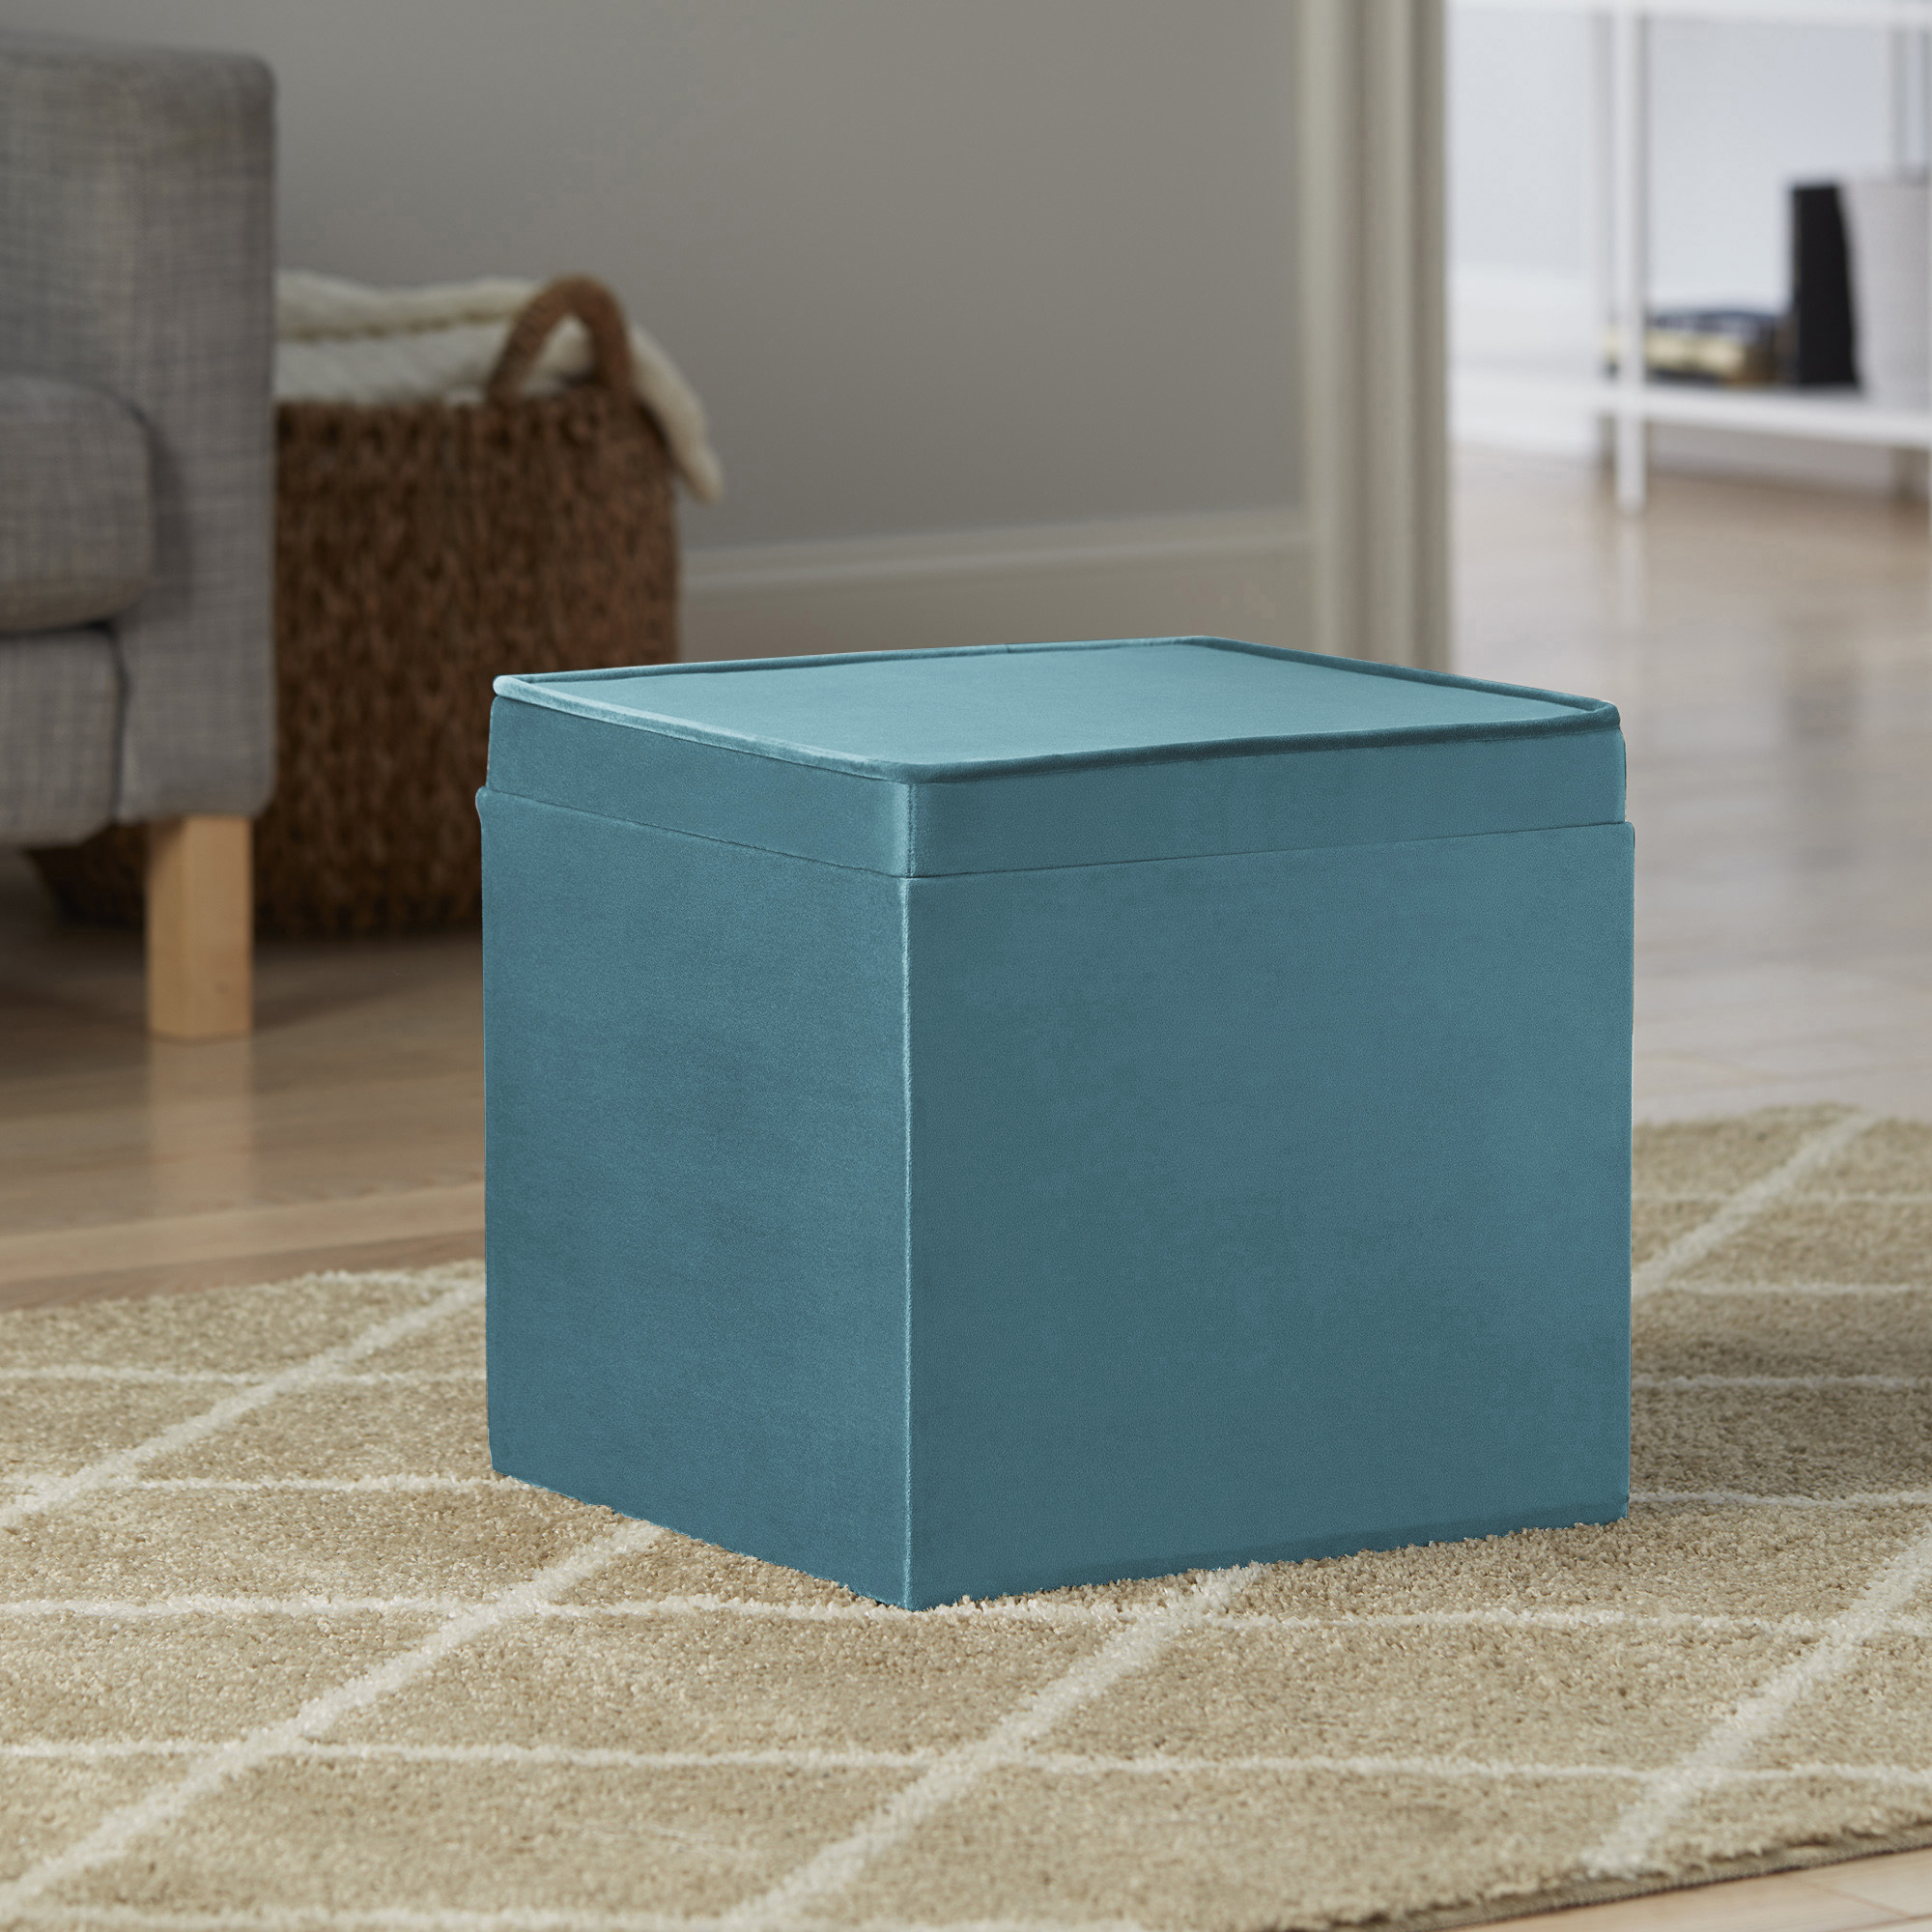 Better Home & Gardens Velvet Storage Ottoman with Tray, Cool Water